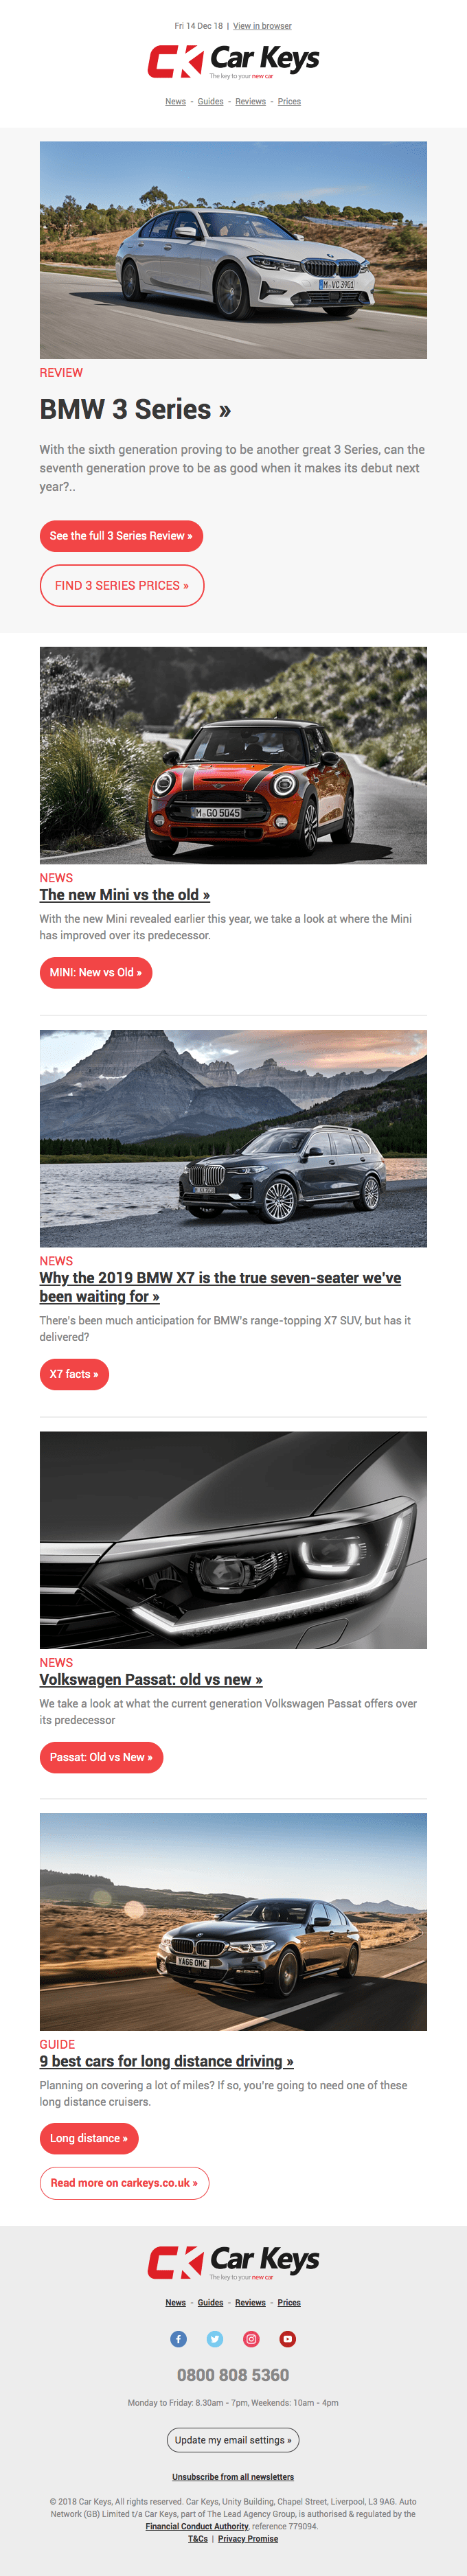 2019 BMW 3 Series review, MINI: Old vs New and much more..